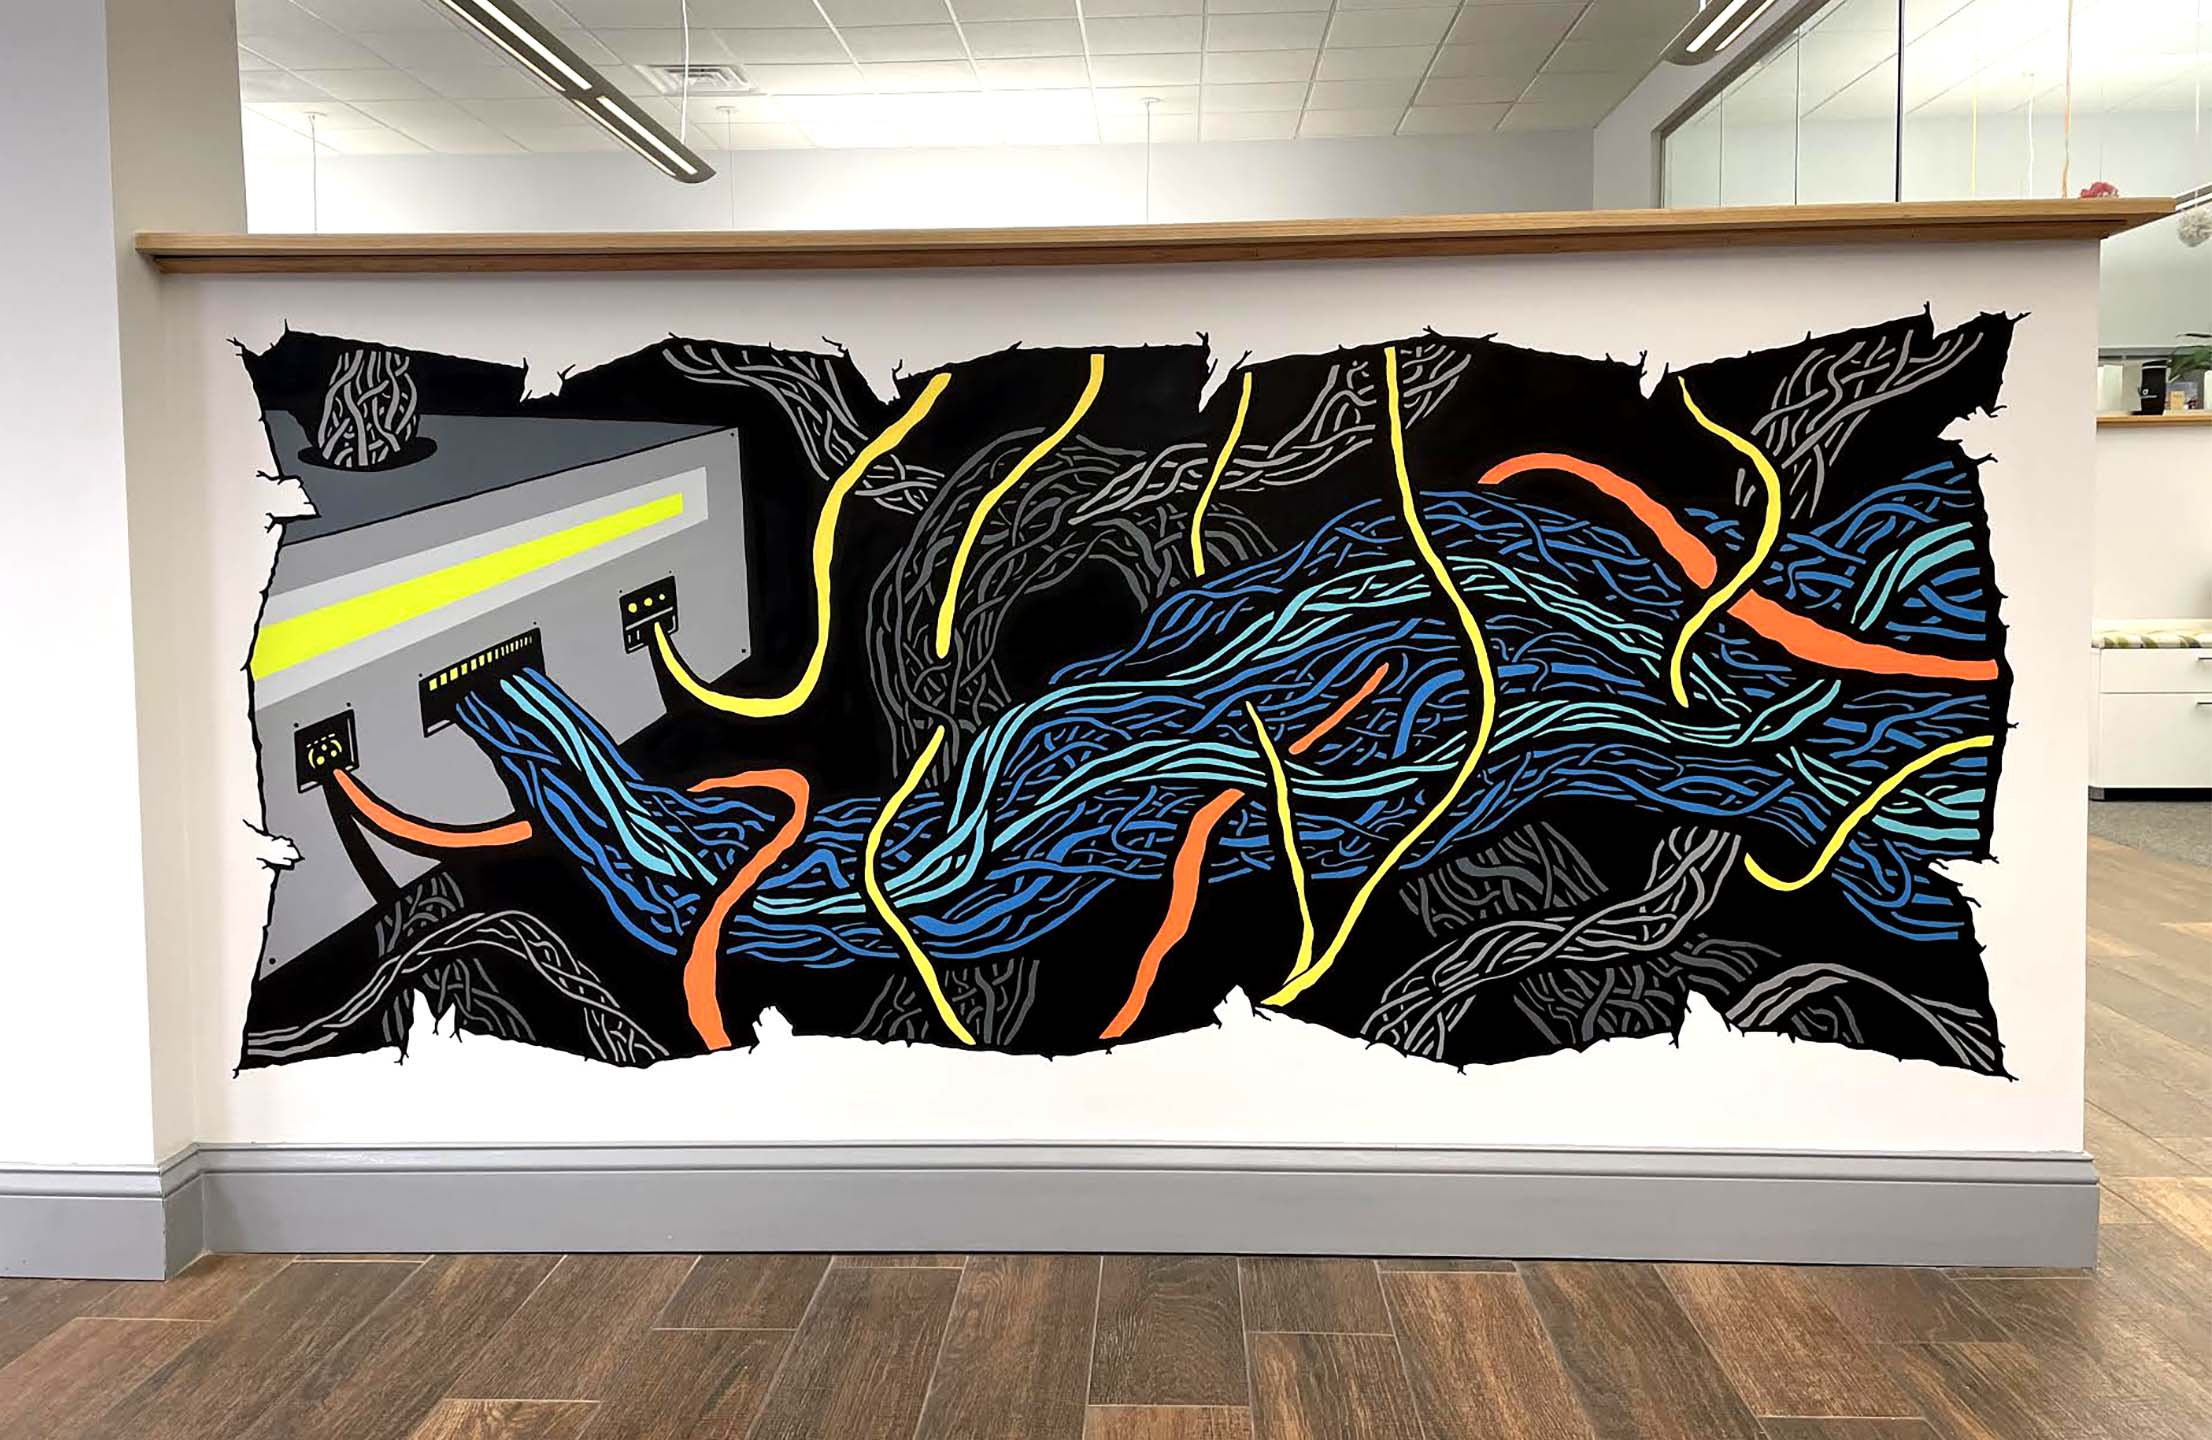 dripped-on-productions-denton-burrows-sever-wires-mural